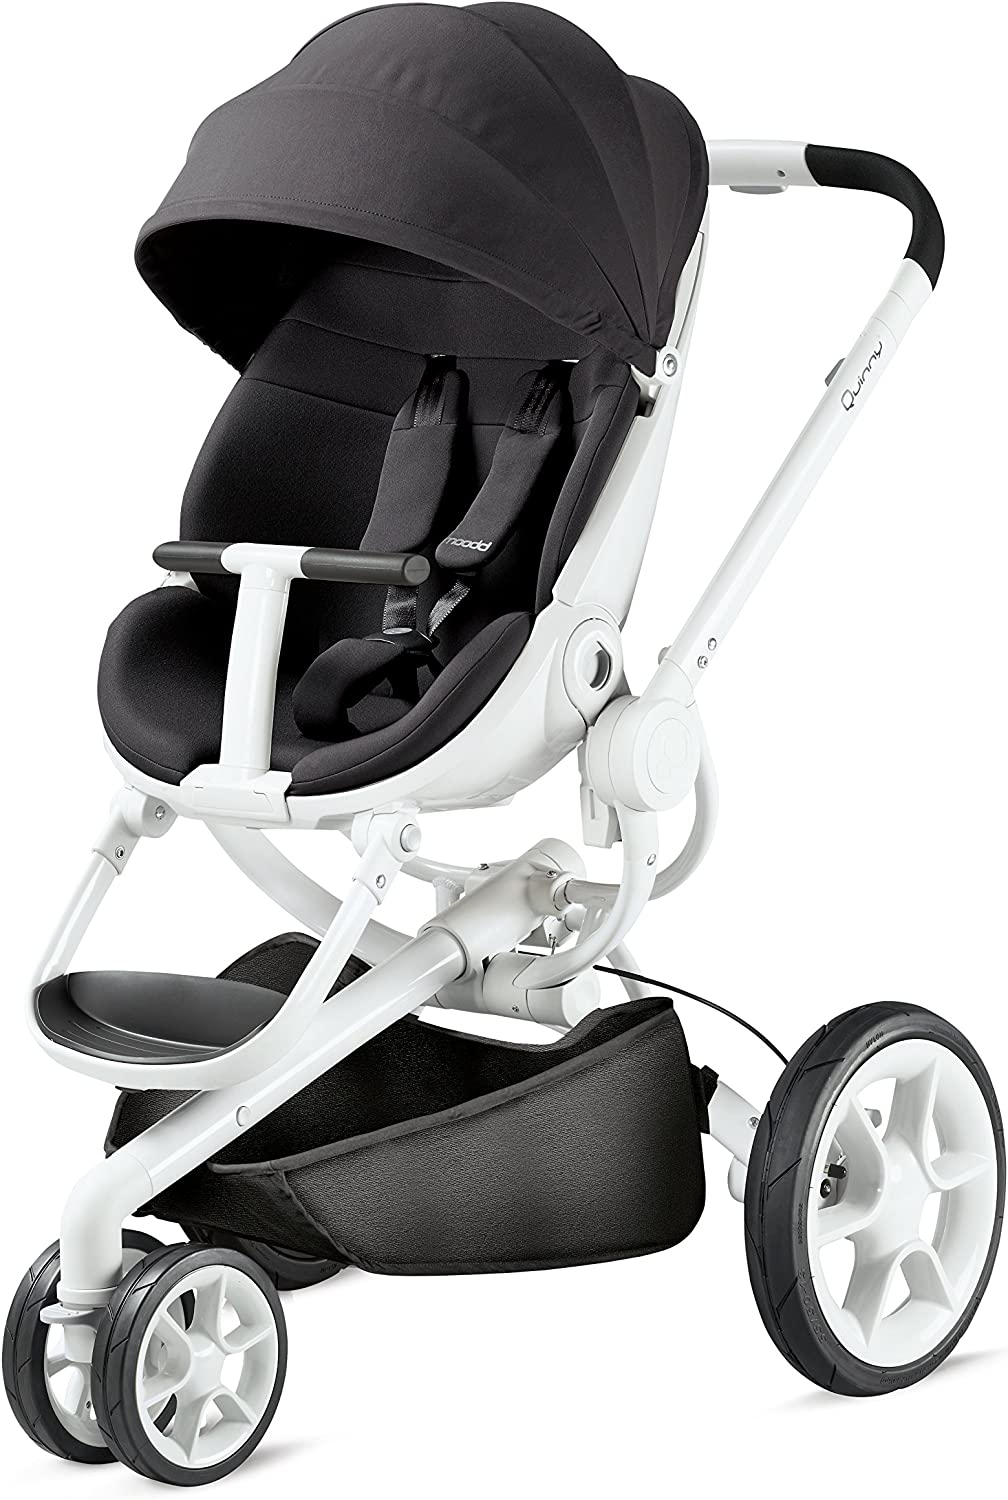 Rain Cover For Quinny Moodd Black Cabriofix Travel System